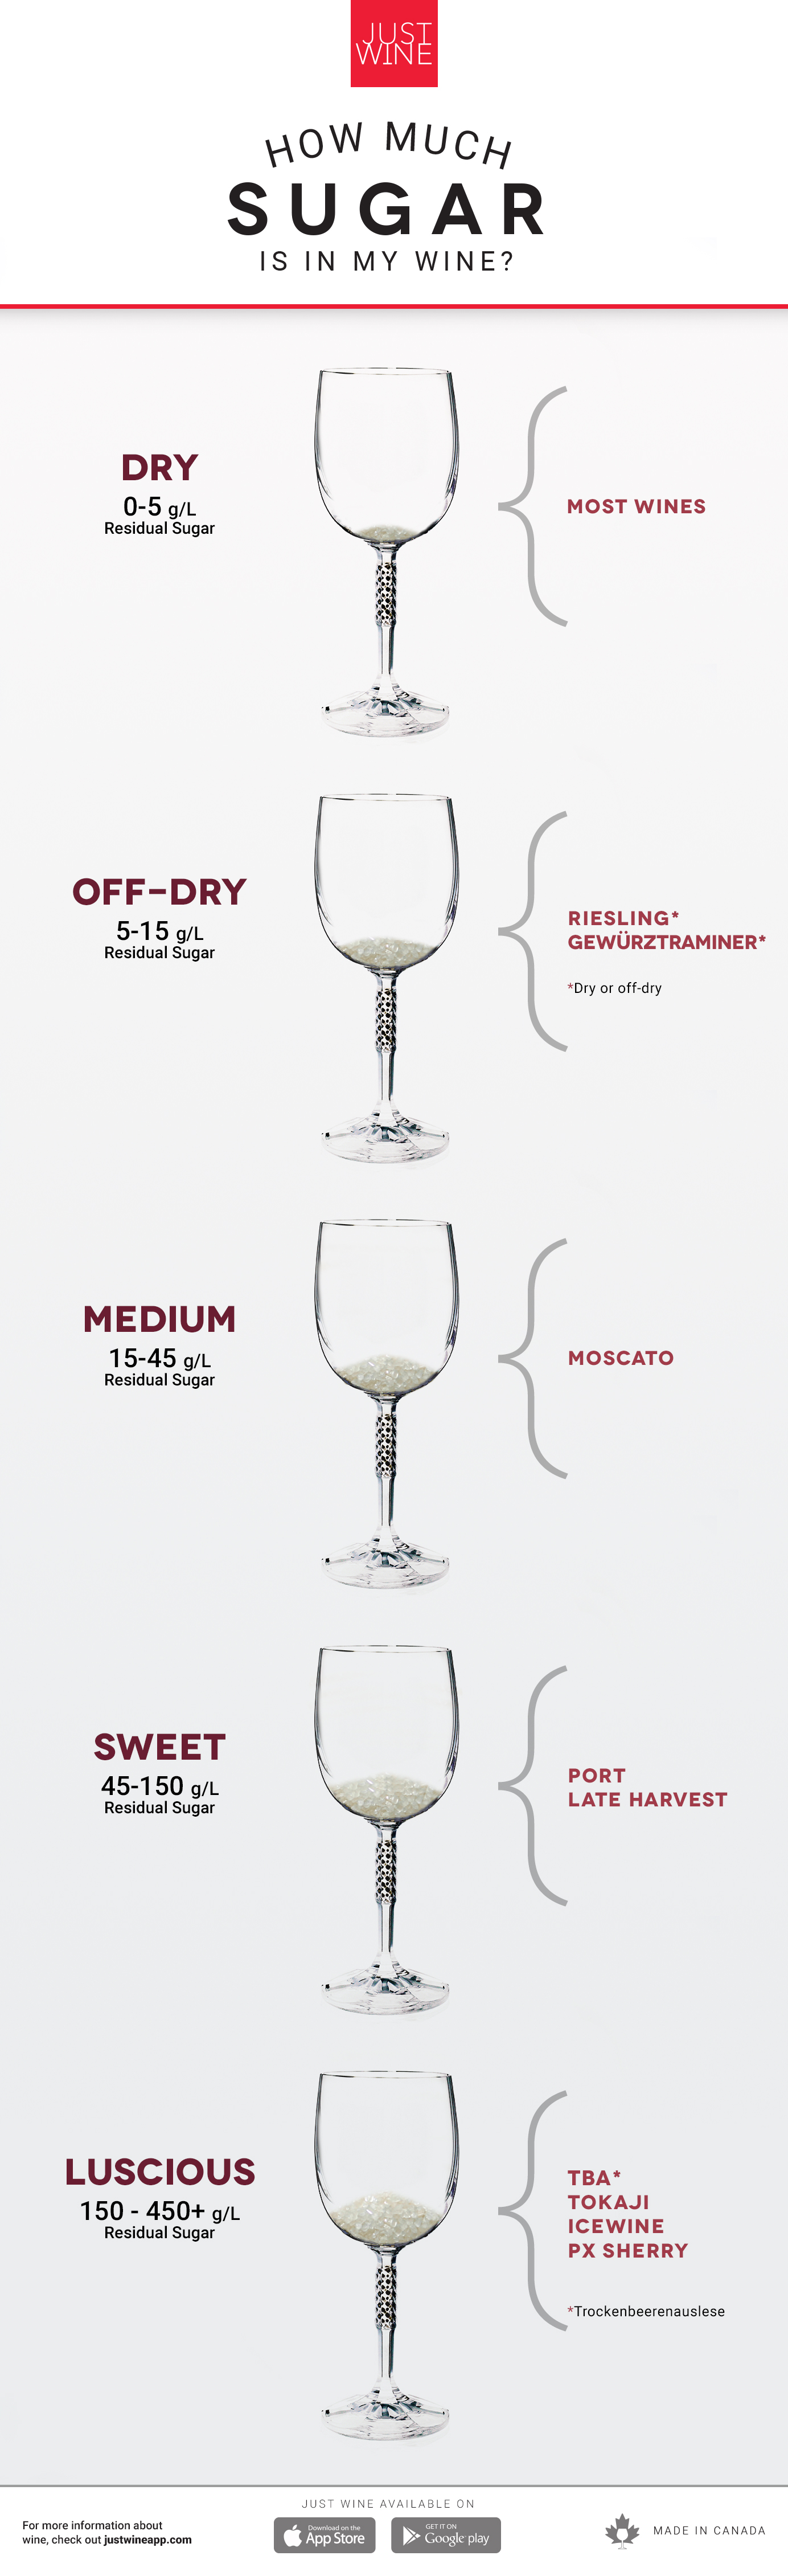 How Much Sugar is in my wine? sweet, dry, fruity